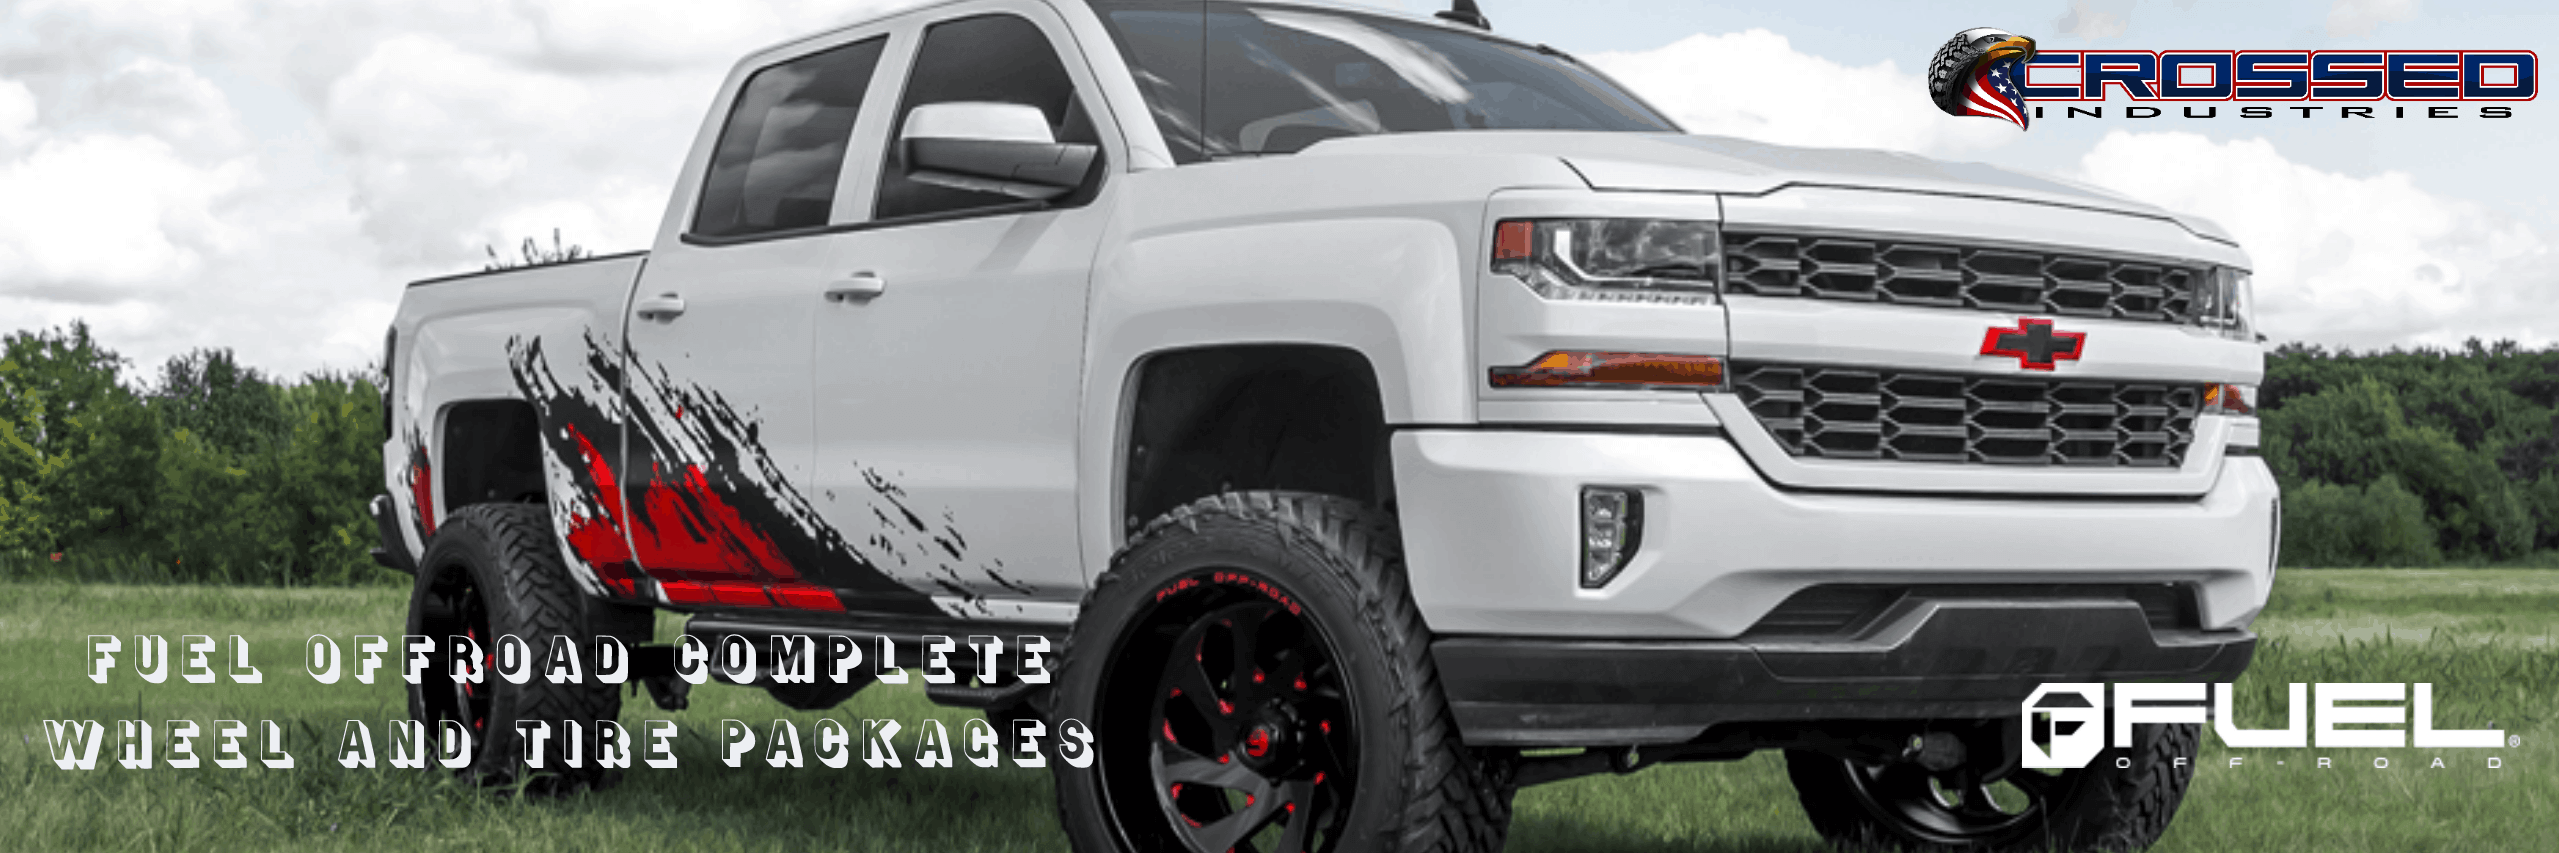 Fuel Offroad Wheel and Gripper Tire Package - Adobe Post 20190818 094644